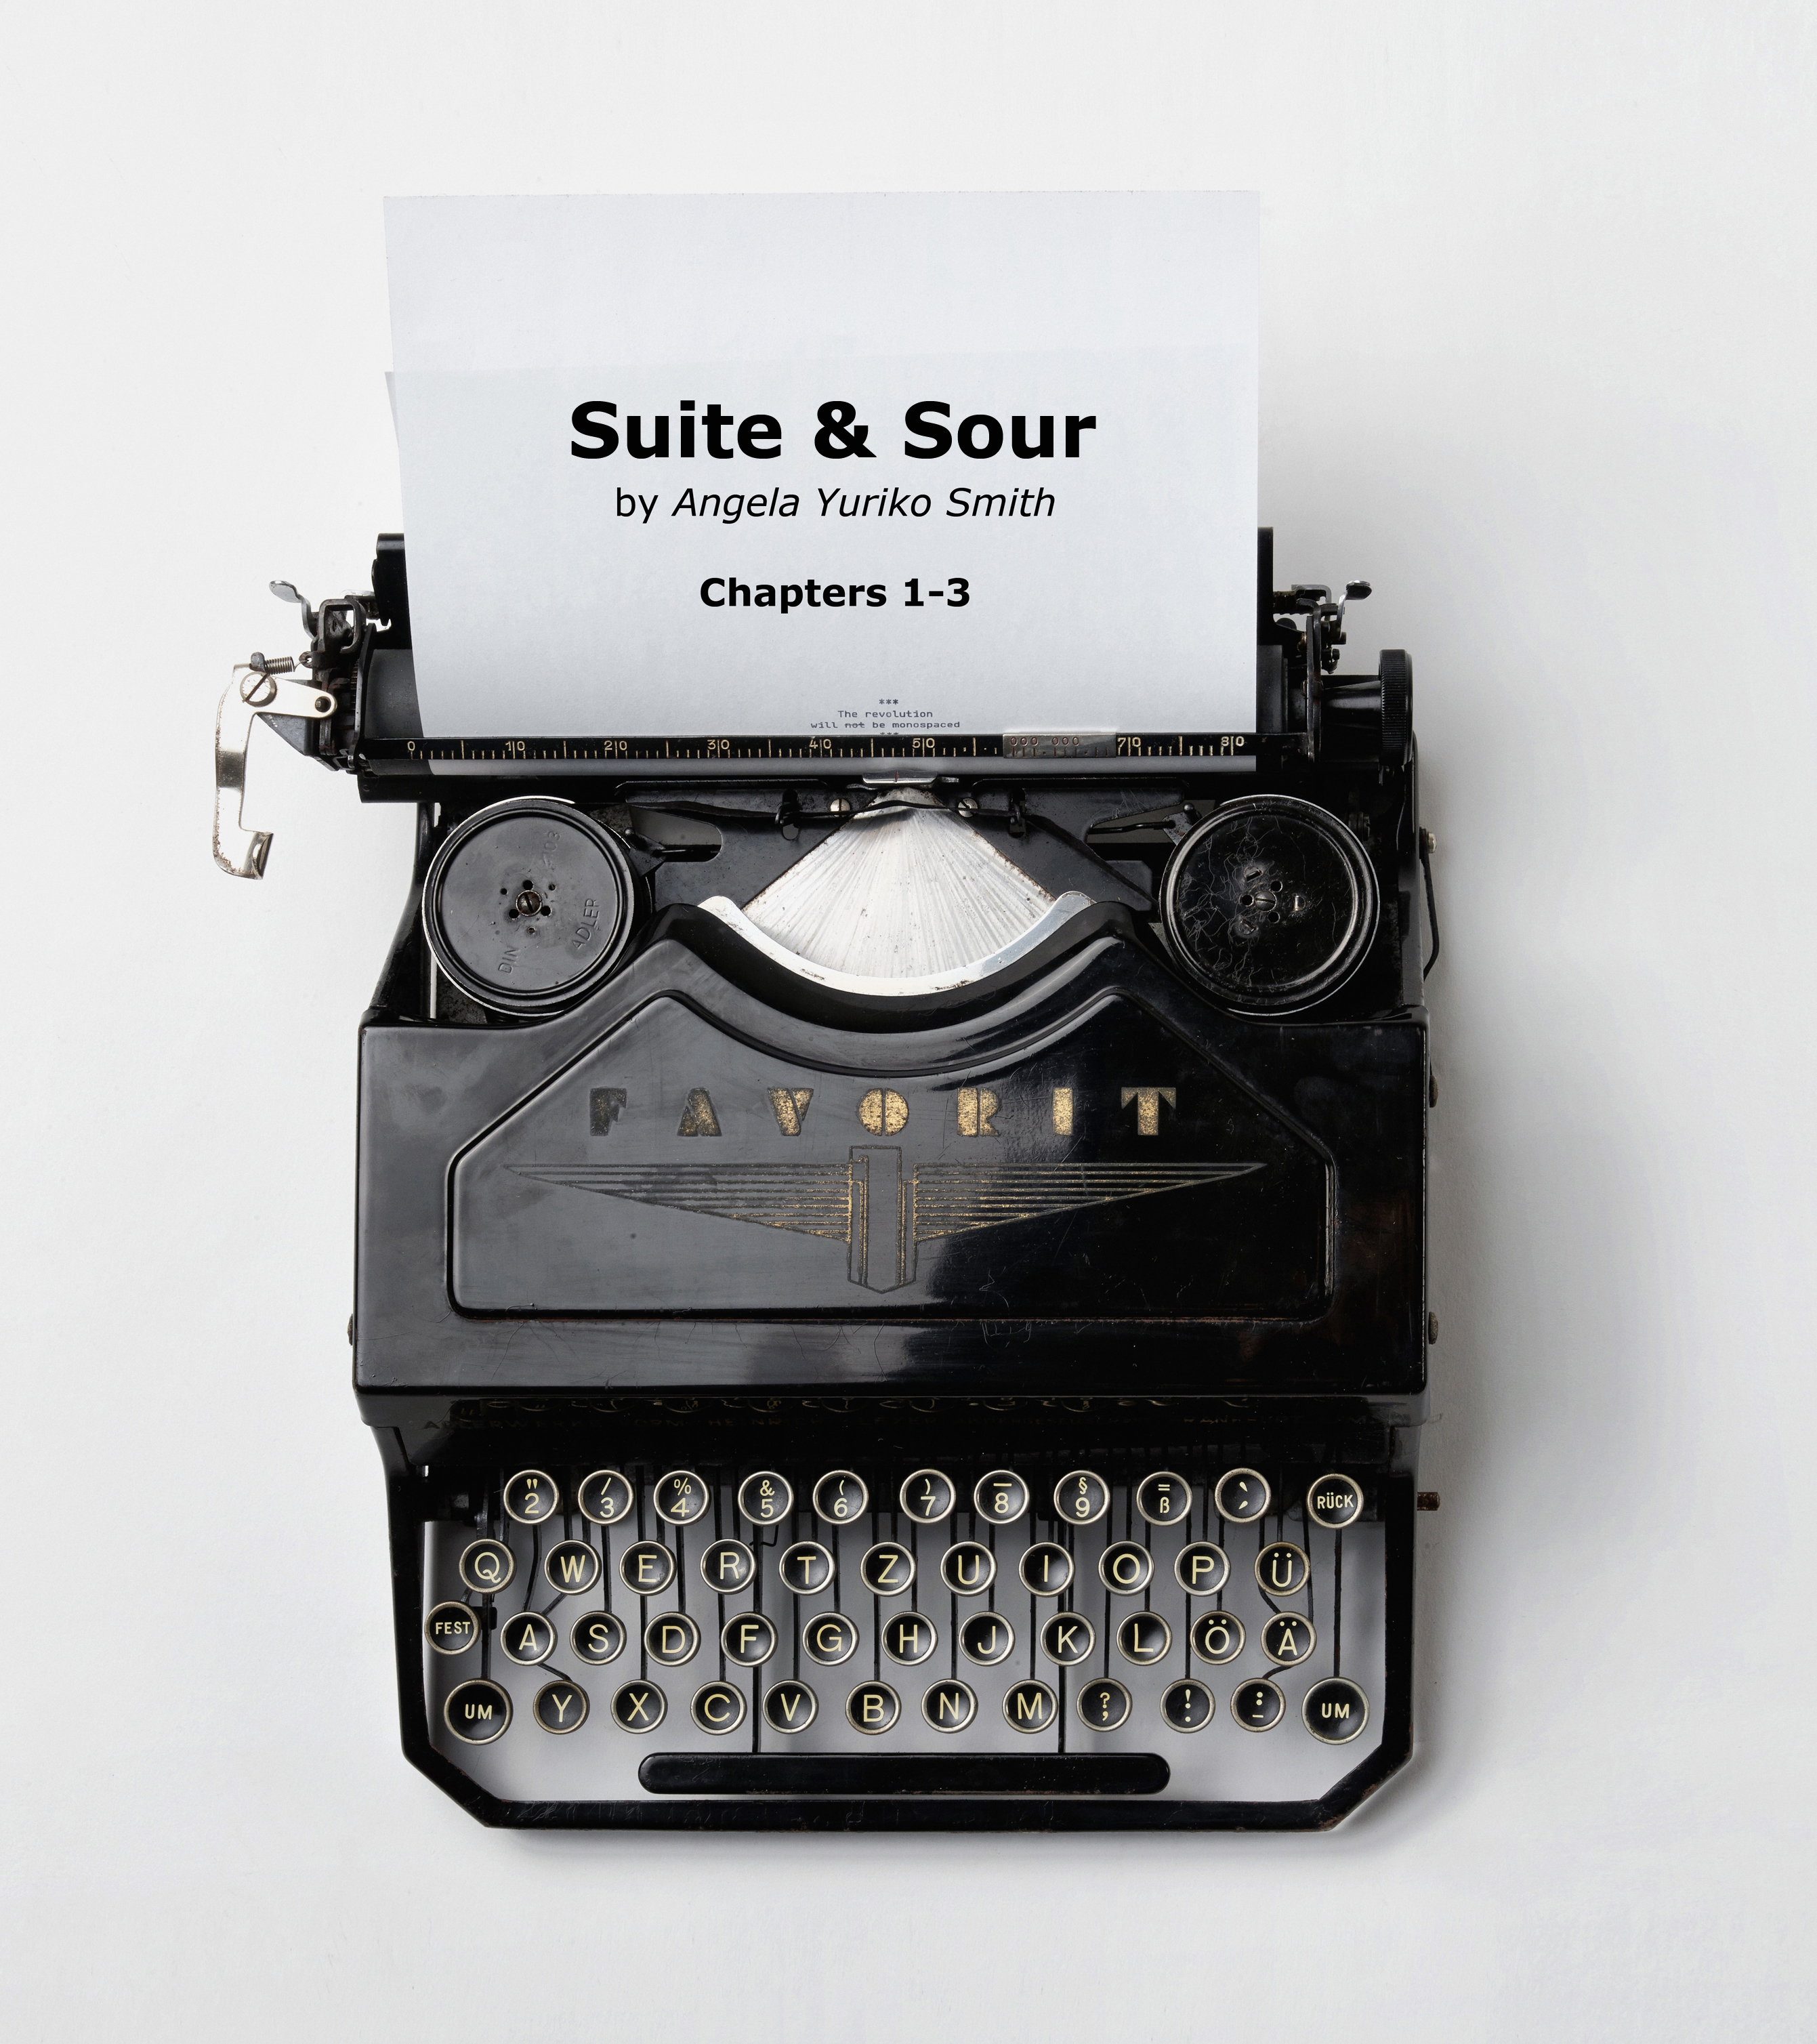 Typewriter suite and sour